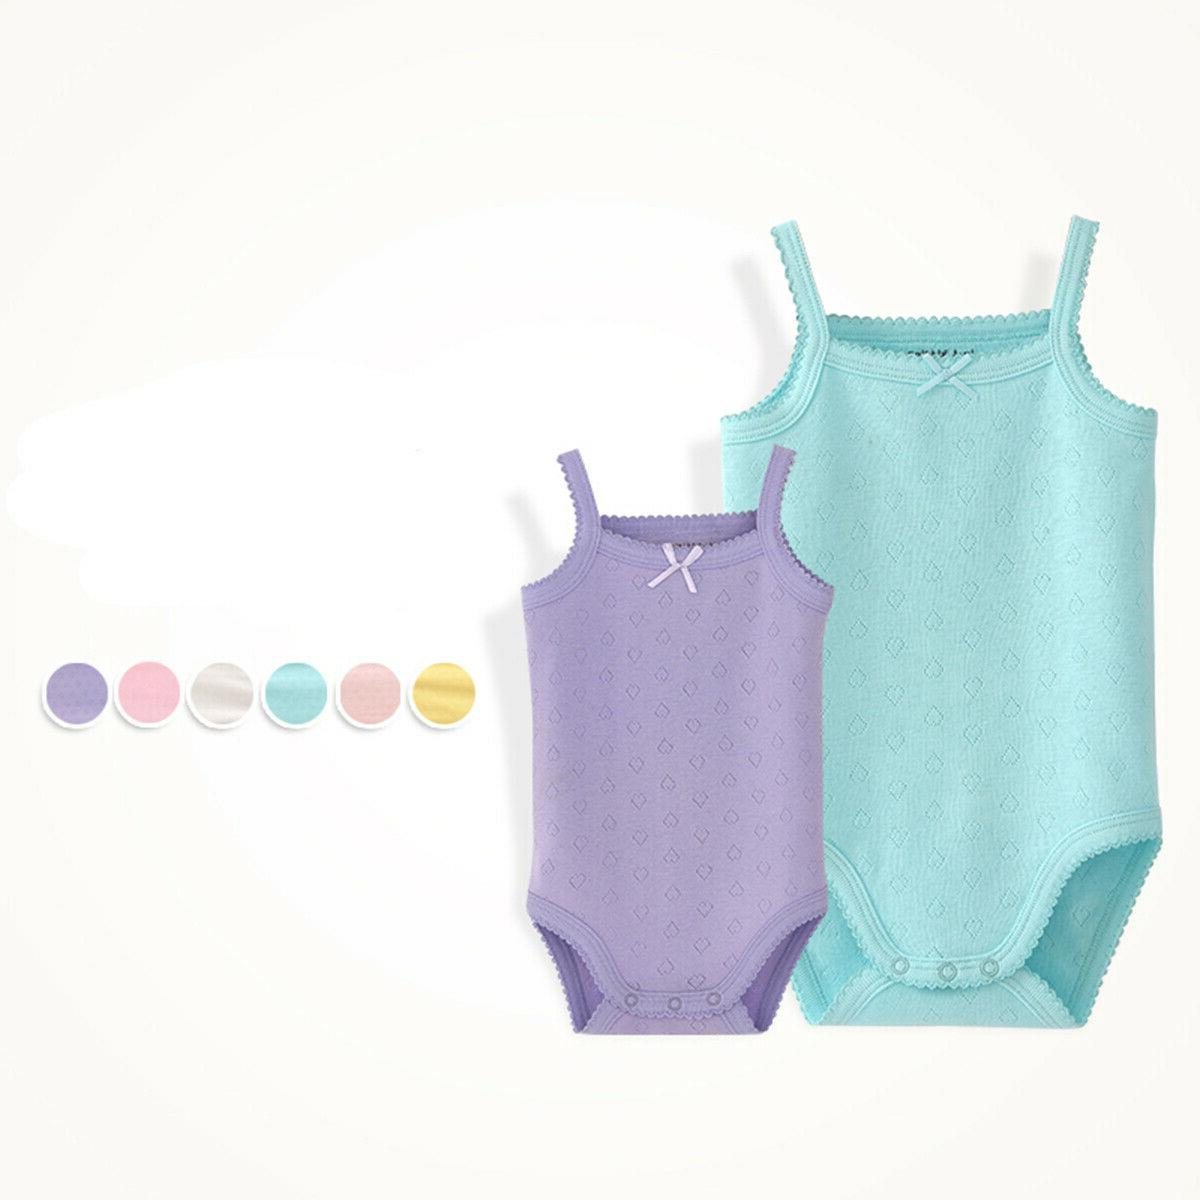 Baby Top Pack Clothes